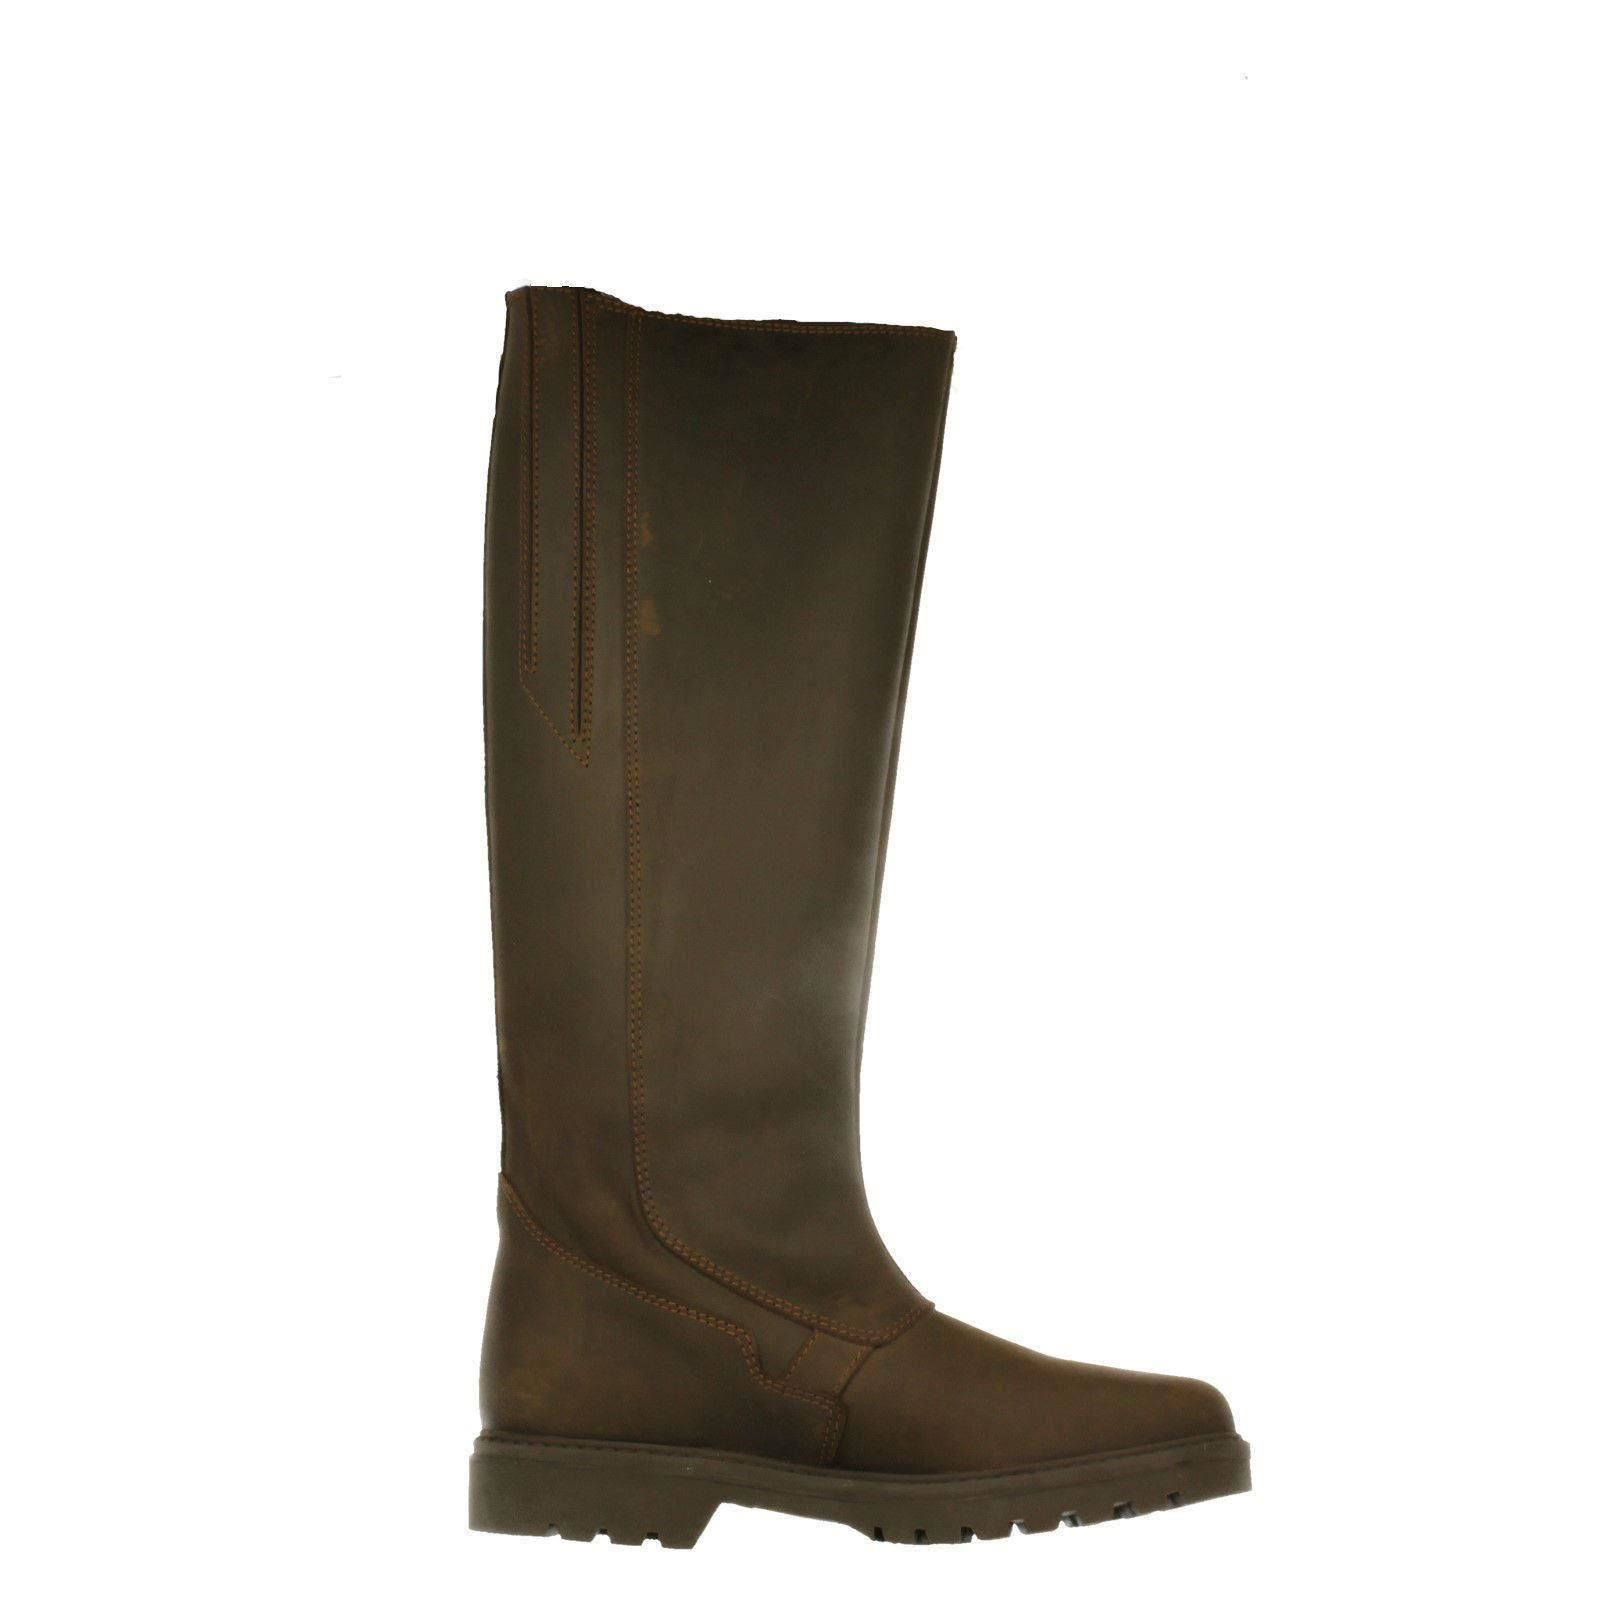 Unisex Ridding/Country Boots The The The Style Gaucho-W 72d1d6